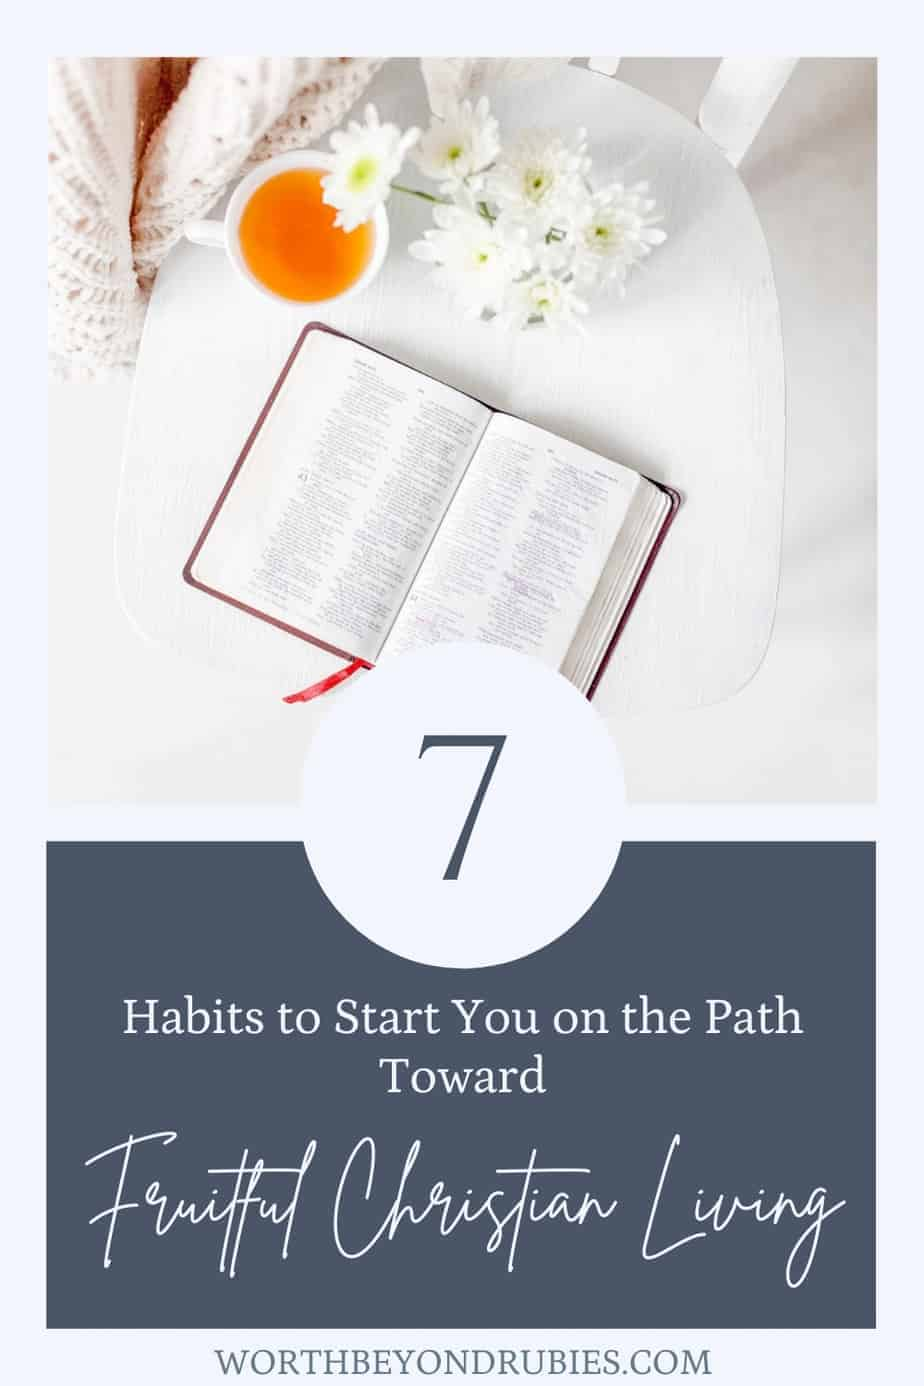 An image of a BIble and a cup of tea and text that says 7 Habits to Start You on the Path Toward Fruitful Christian Living